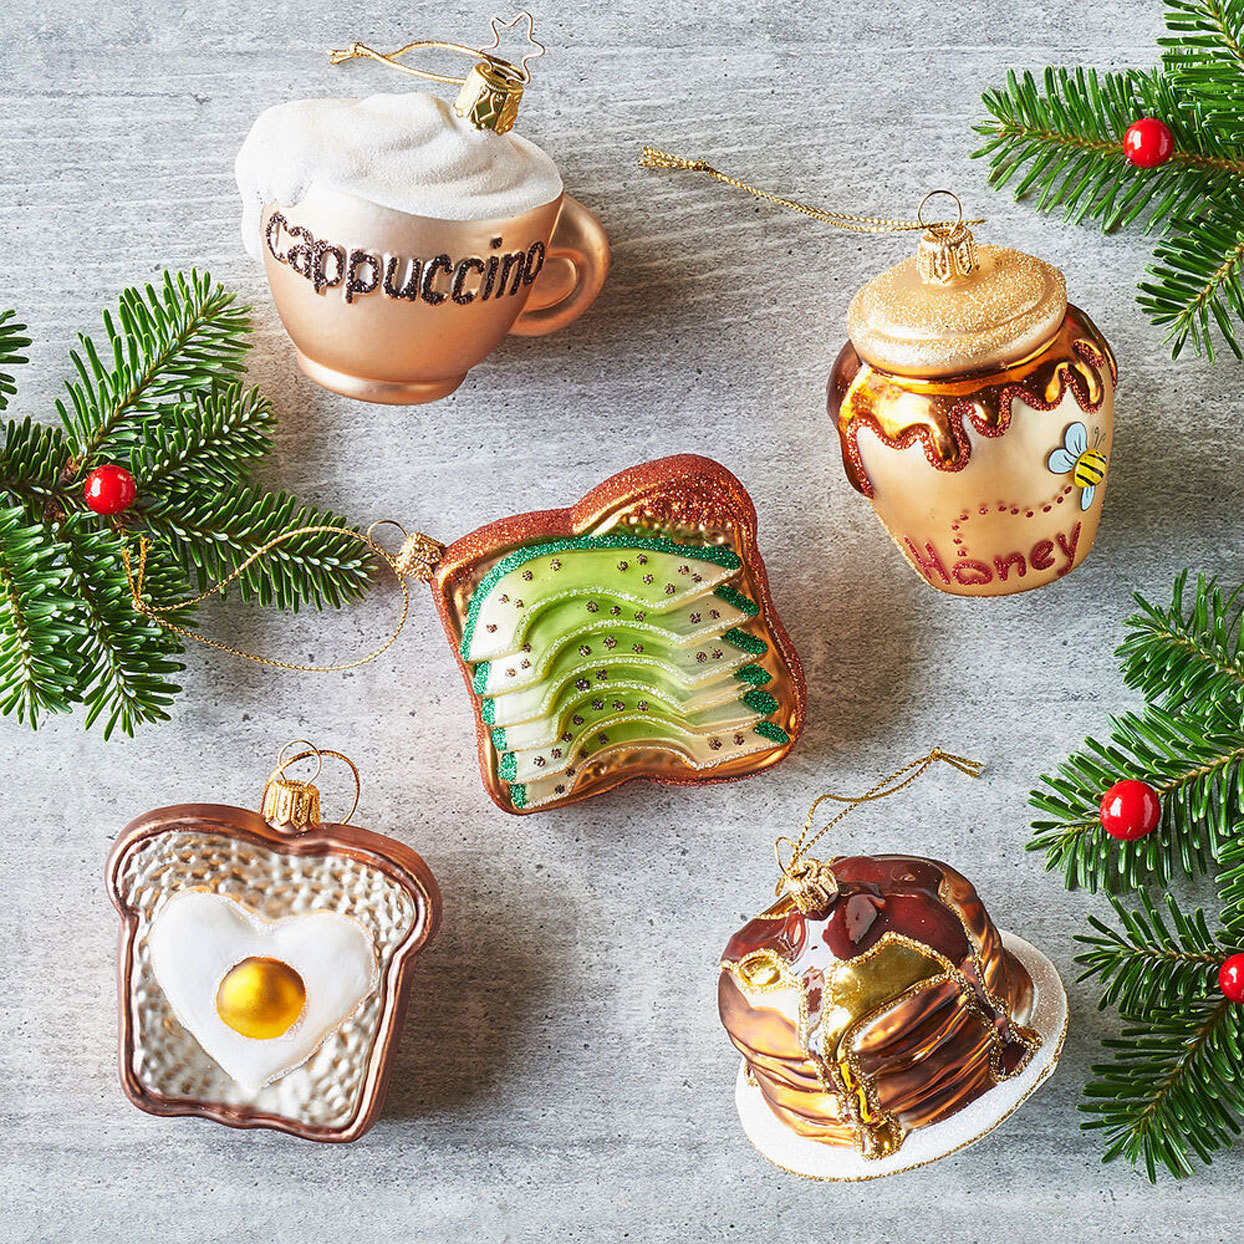 Food Christmas Tree Ornaments - latte, pot of honey, avocado toast, egg on toast, pancakes